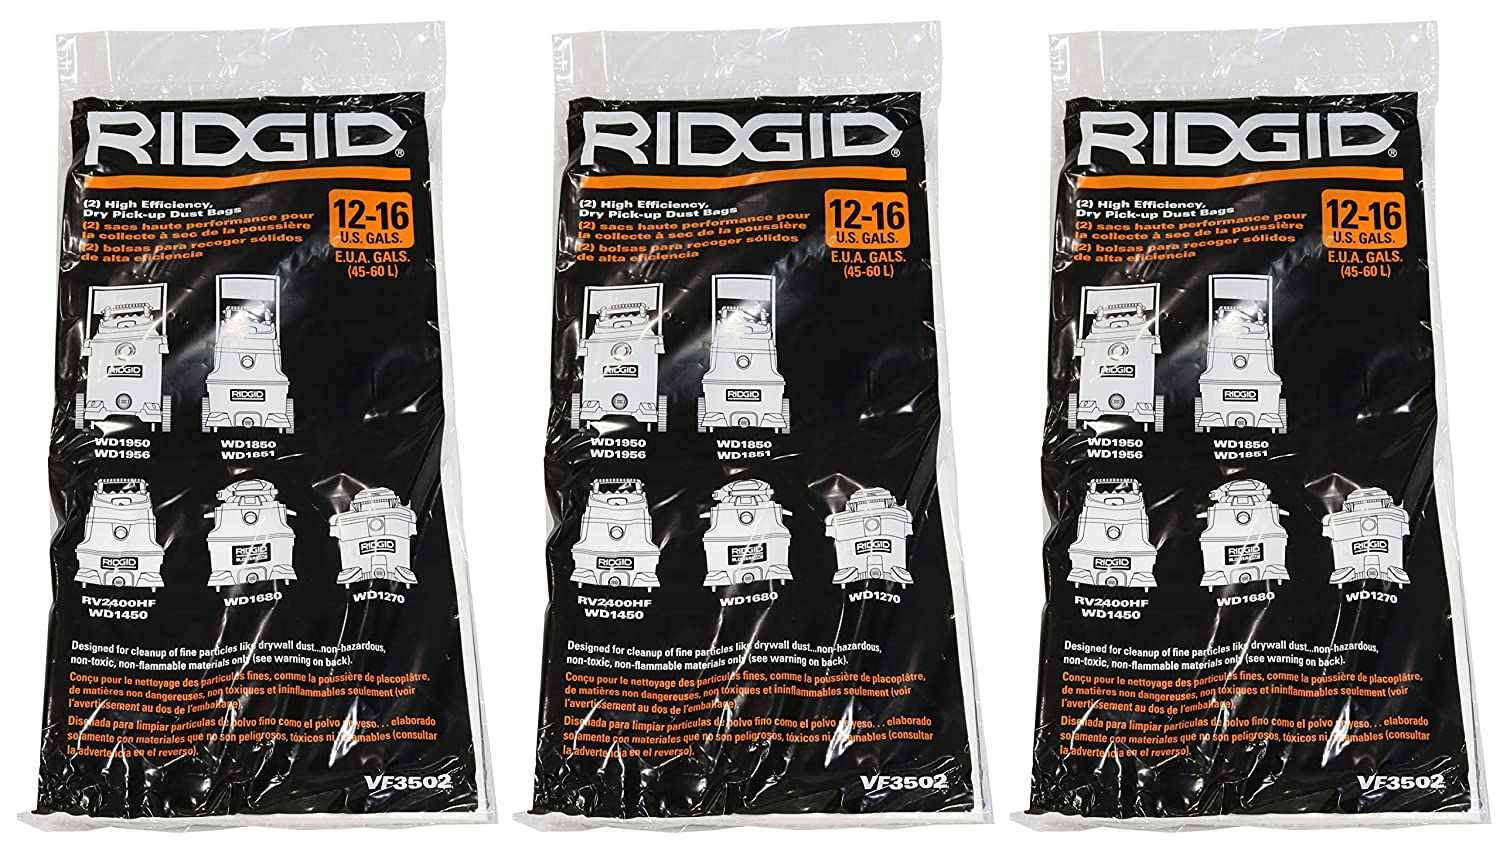 Ridgid VF3502 High Efficiency, Dry Pickup Dust Bags for 12 - 16 Gallon Ridgid Wet / Dry Vacuums (3 X Pack of 2)